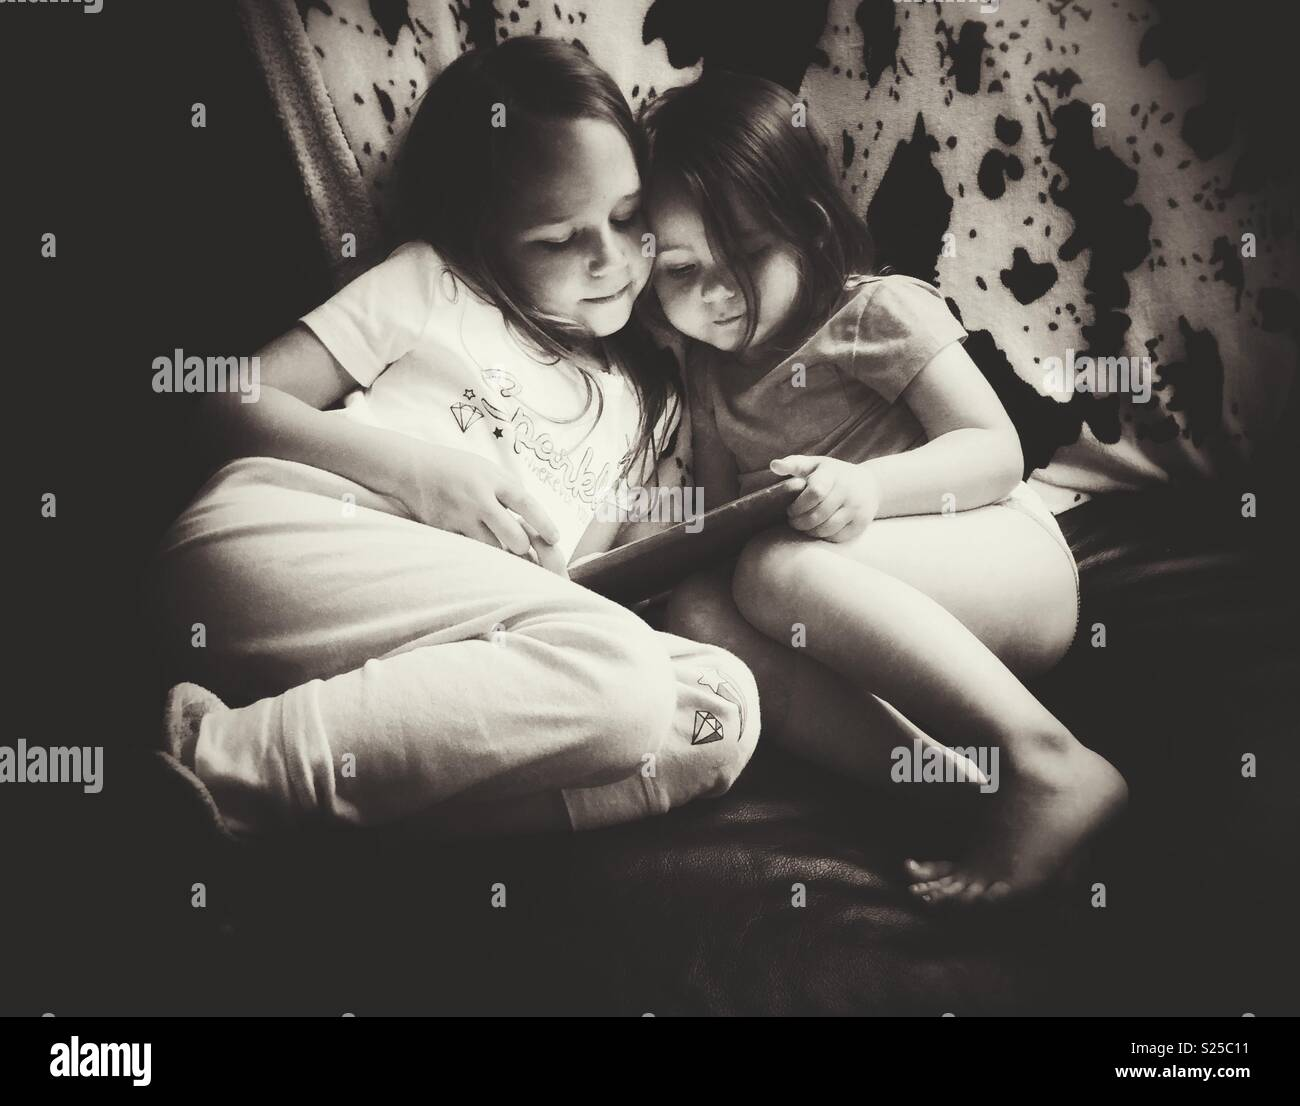 Black and white image of two sisters sitting together looking at a tablet - Stock Image